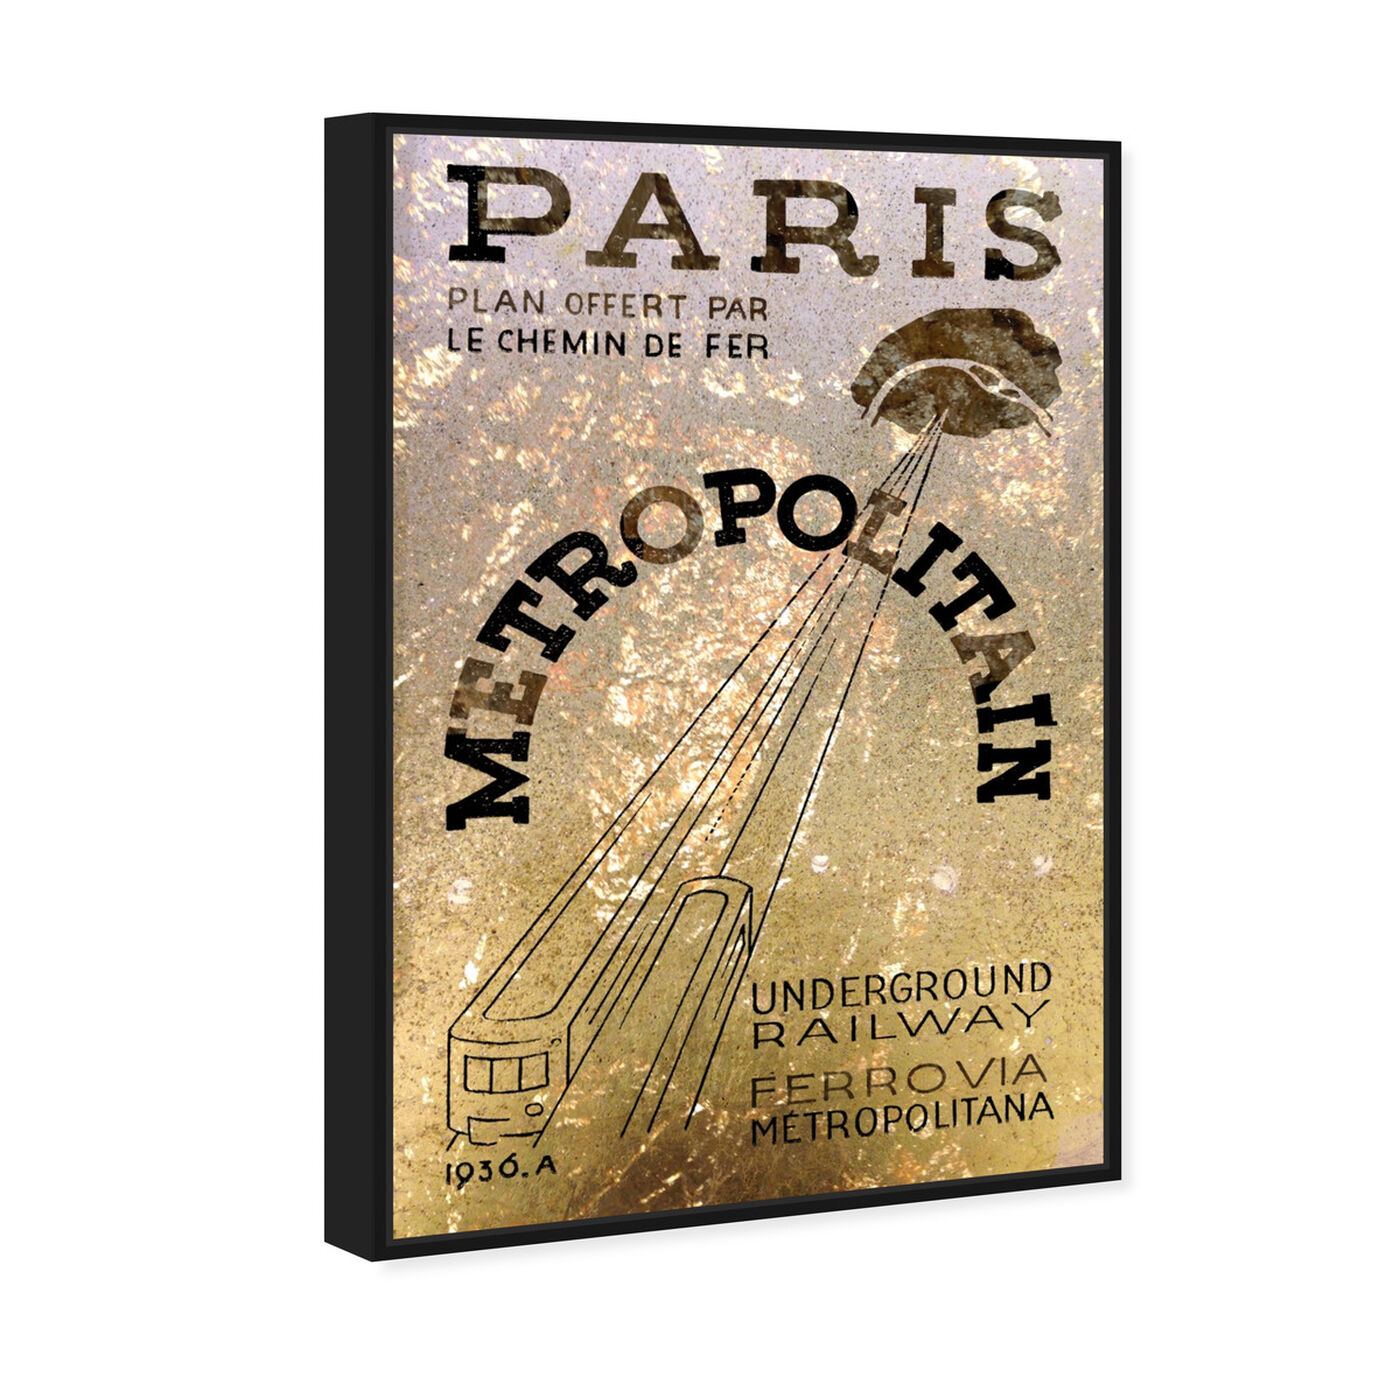 Angled view of Paris 1936 Railway featuring cities and skylines and european cities art.